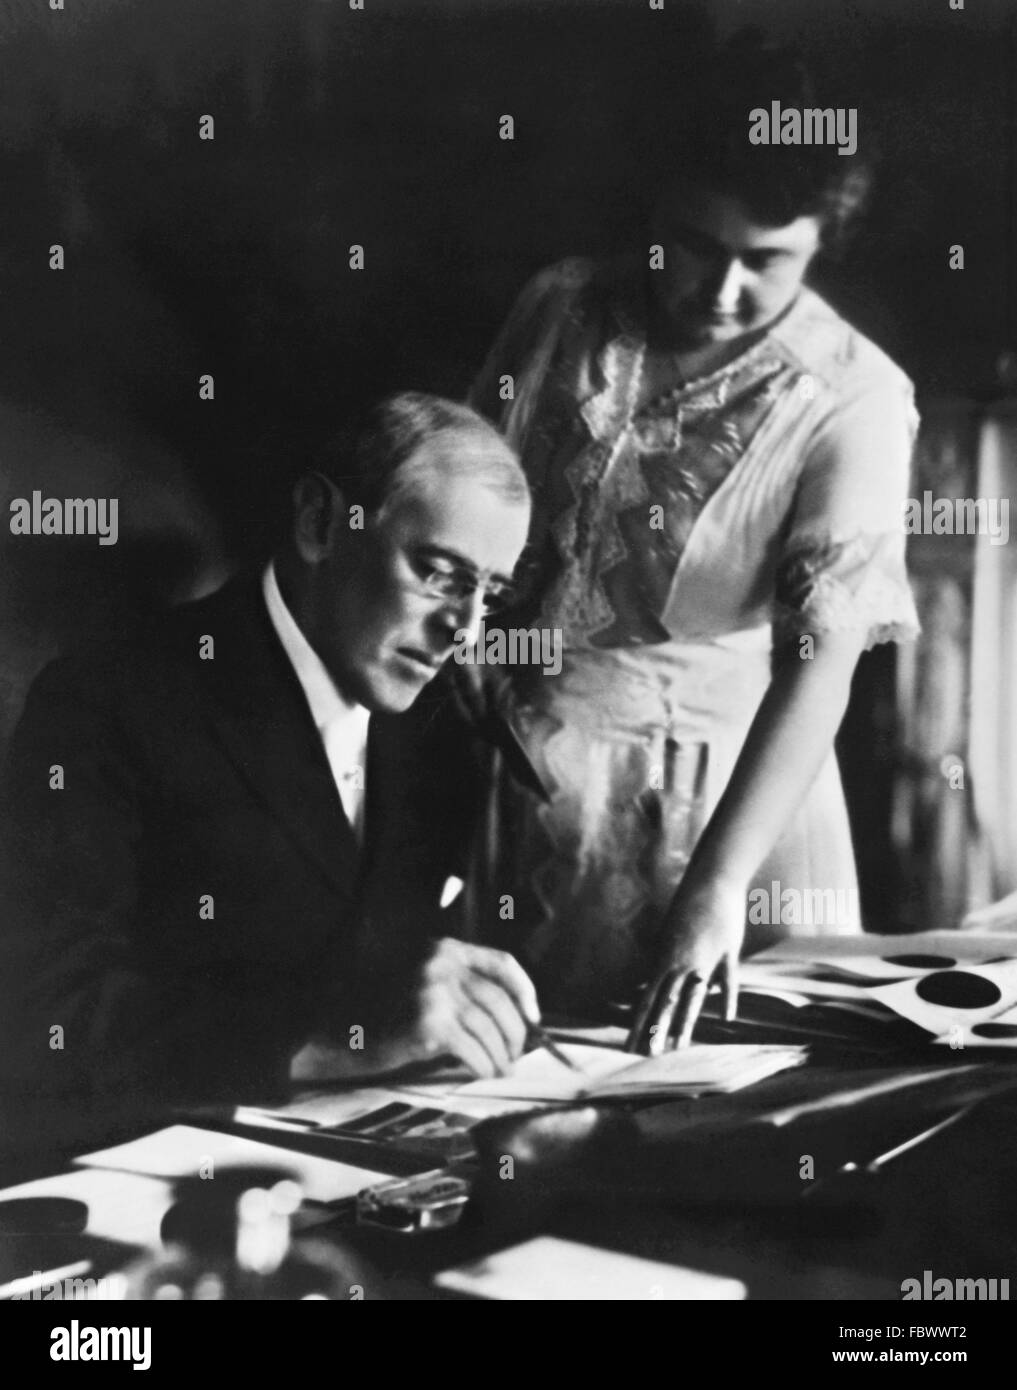 Woodrow Wilson, the 28th President of the USA, with his wife, Edith Bolling Galt, June 1920 - Stock Image